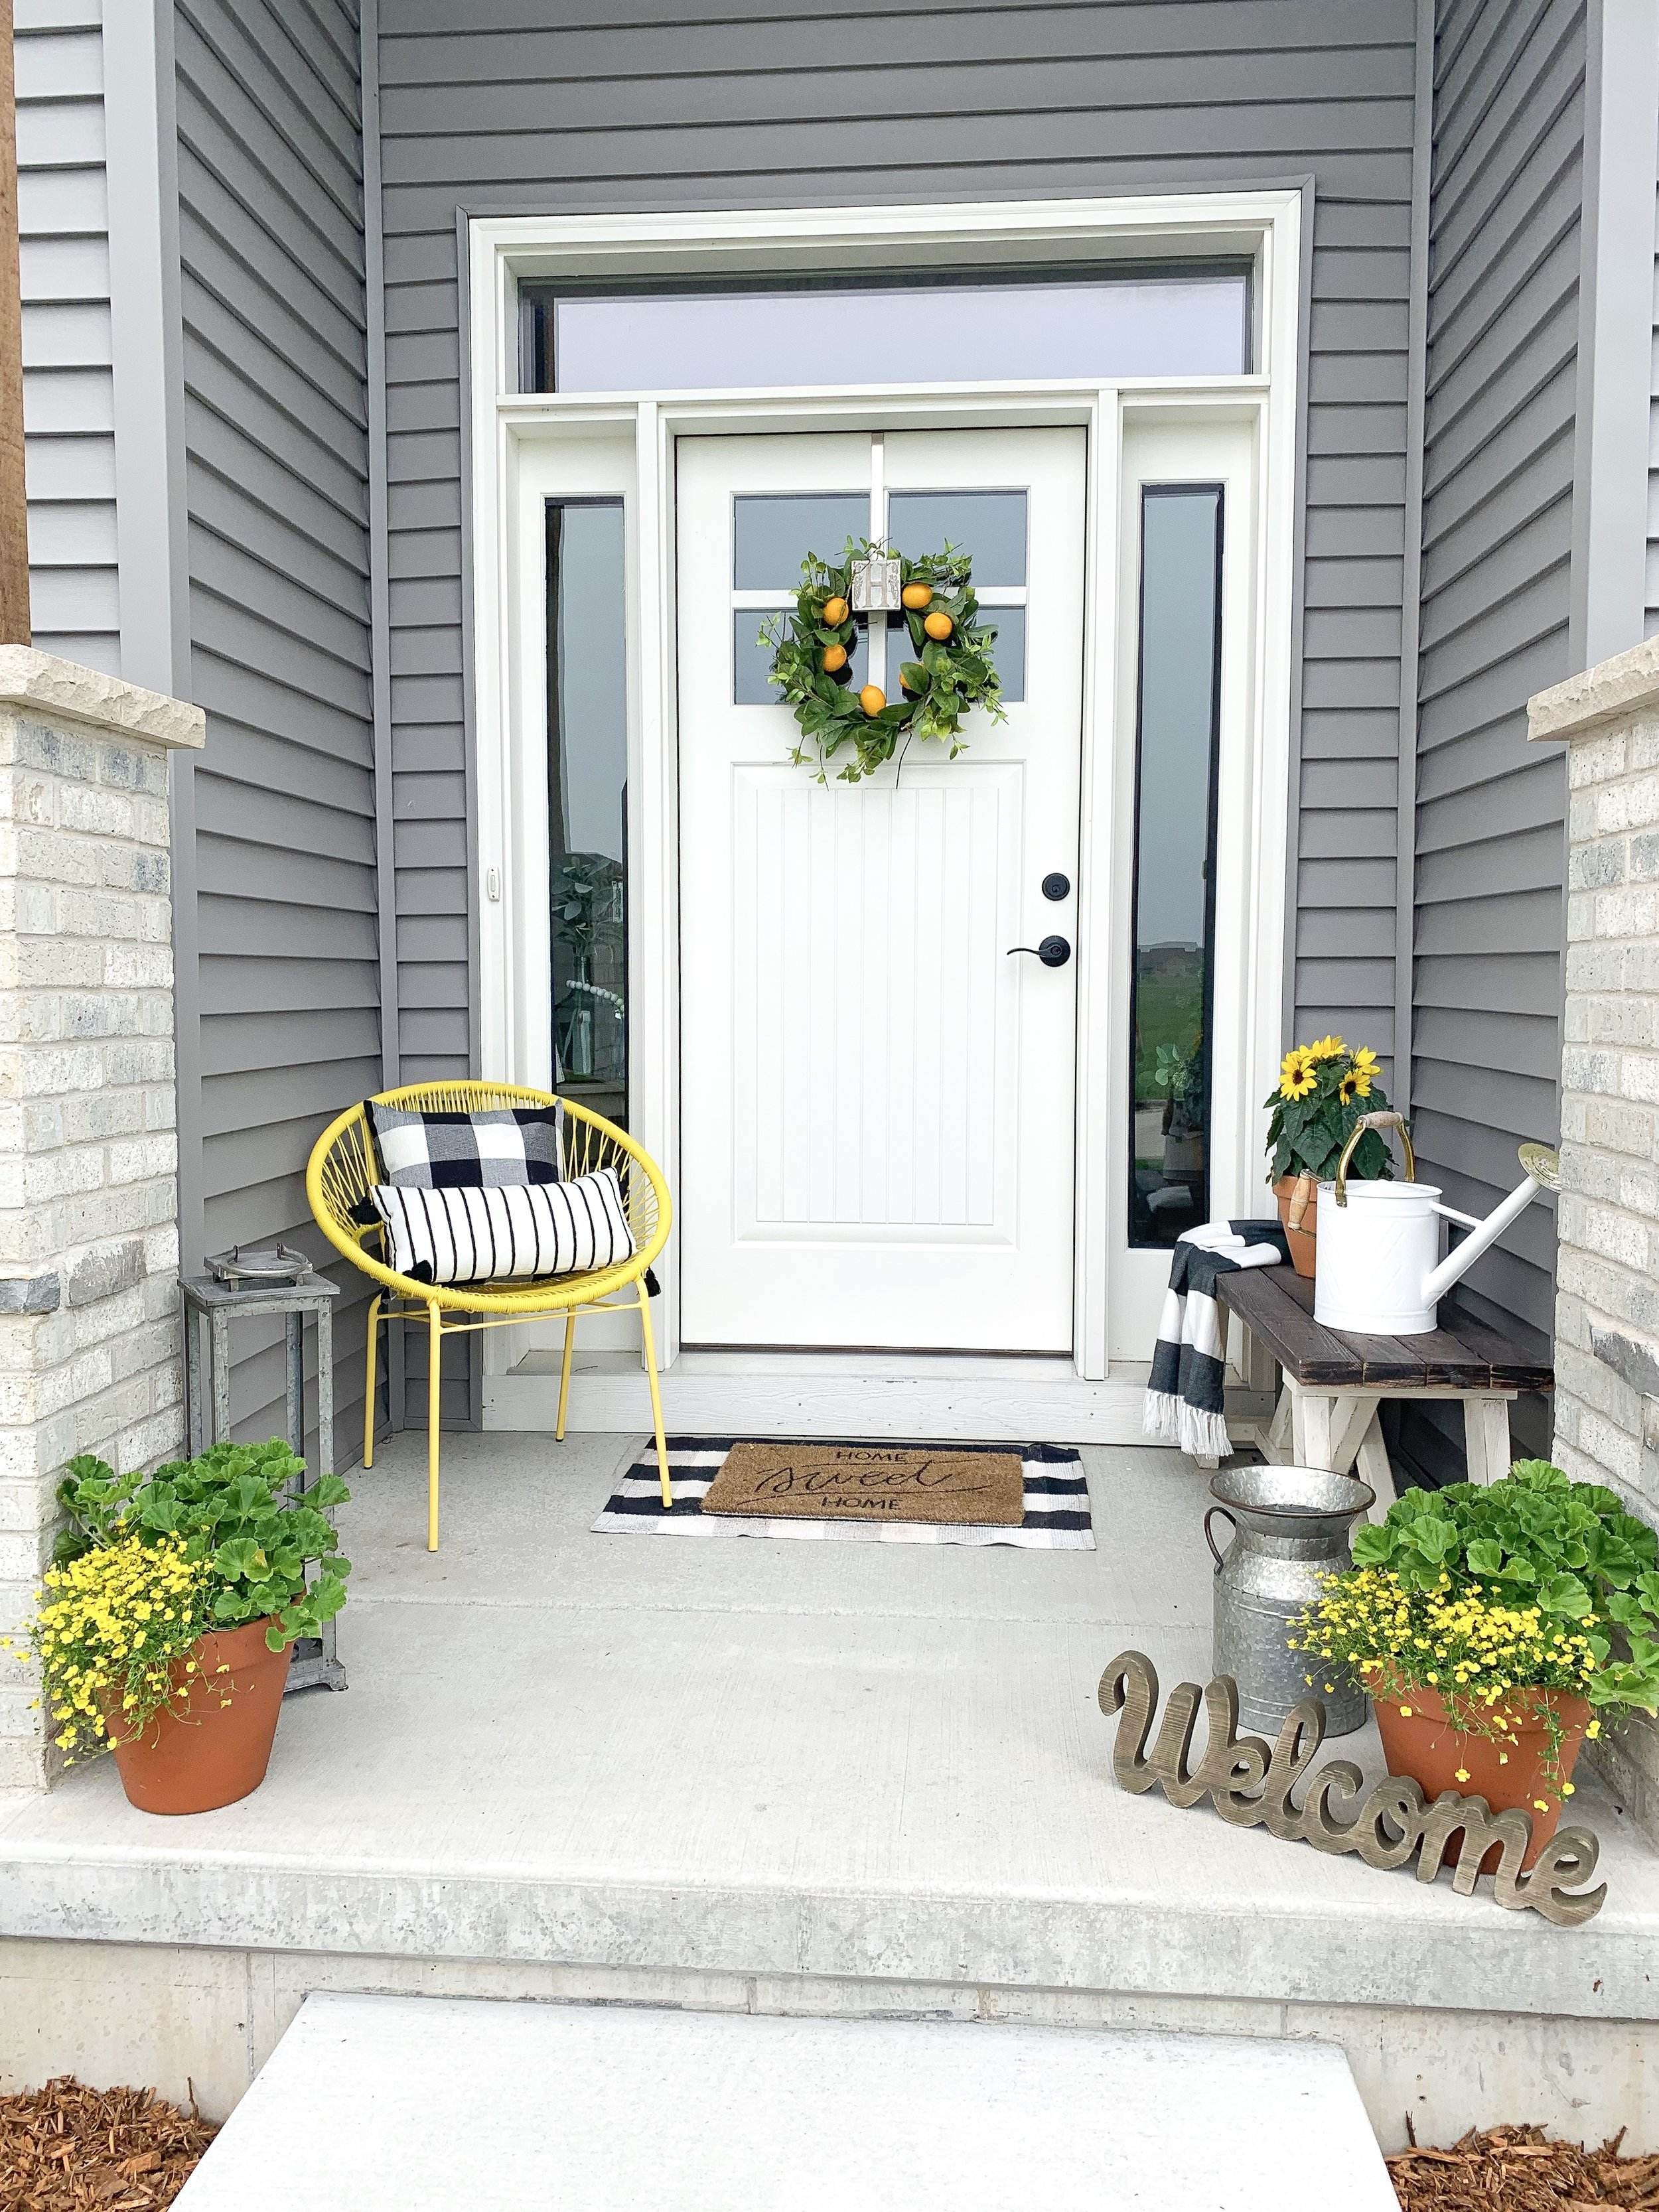 Kirkland's - Creating the Perfect Summer Front Porch with Kirkland's Insiders